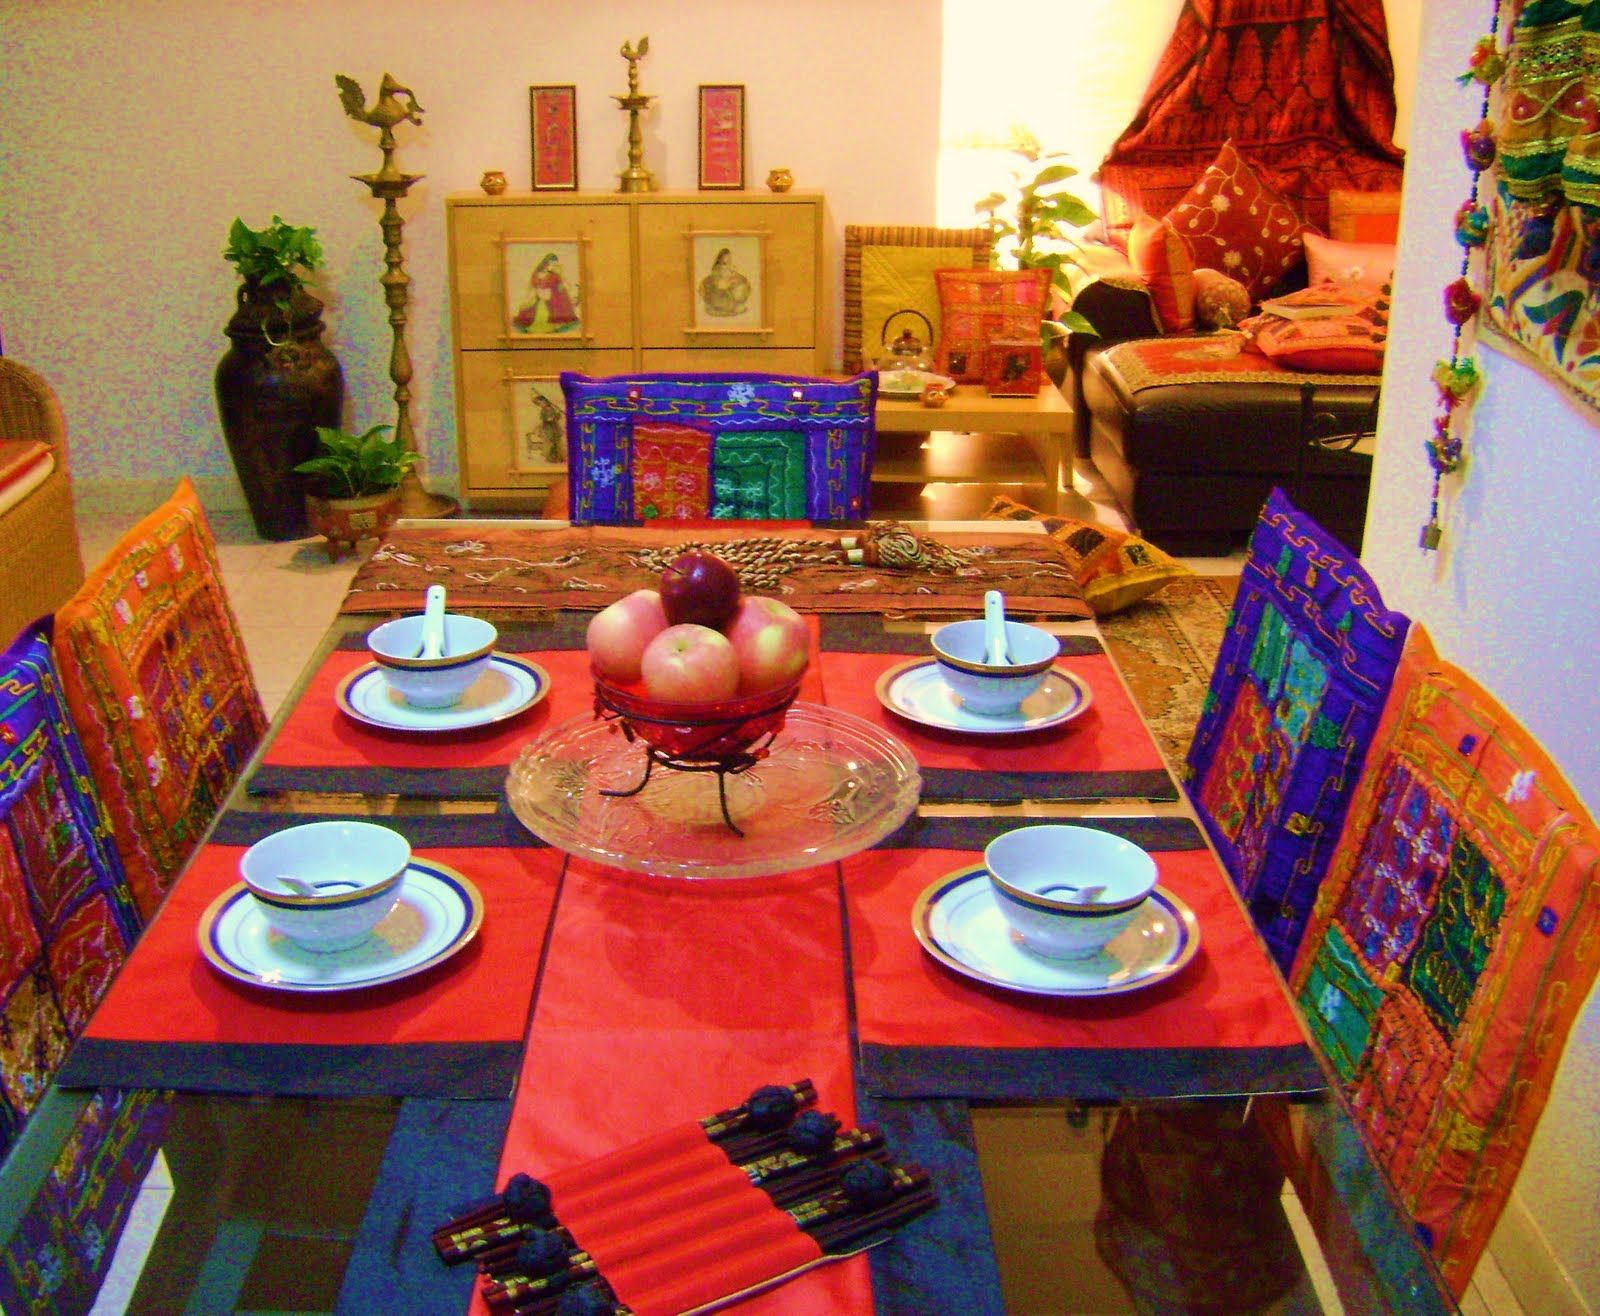 RED Indian Home Decor Design Ideas